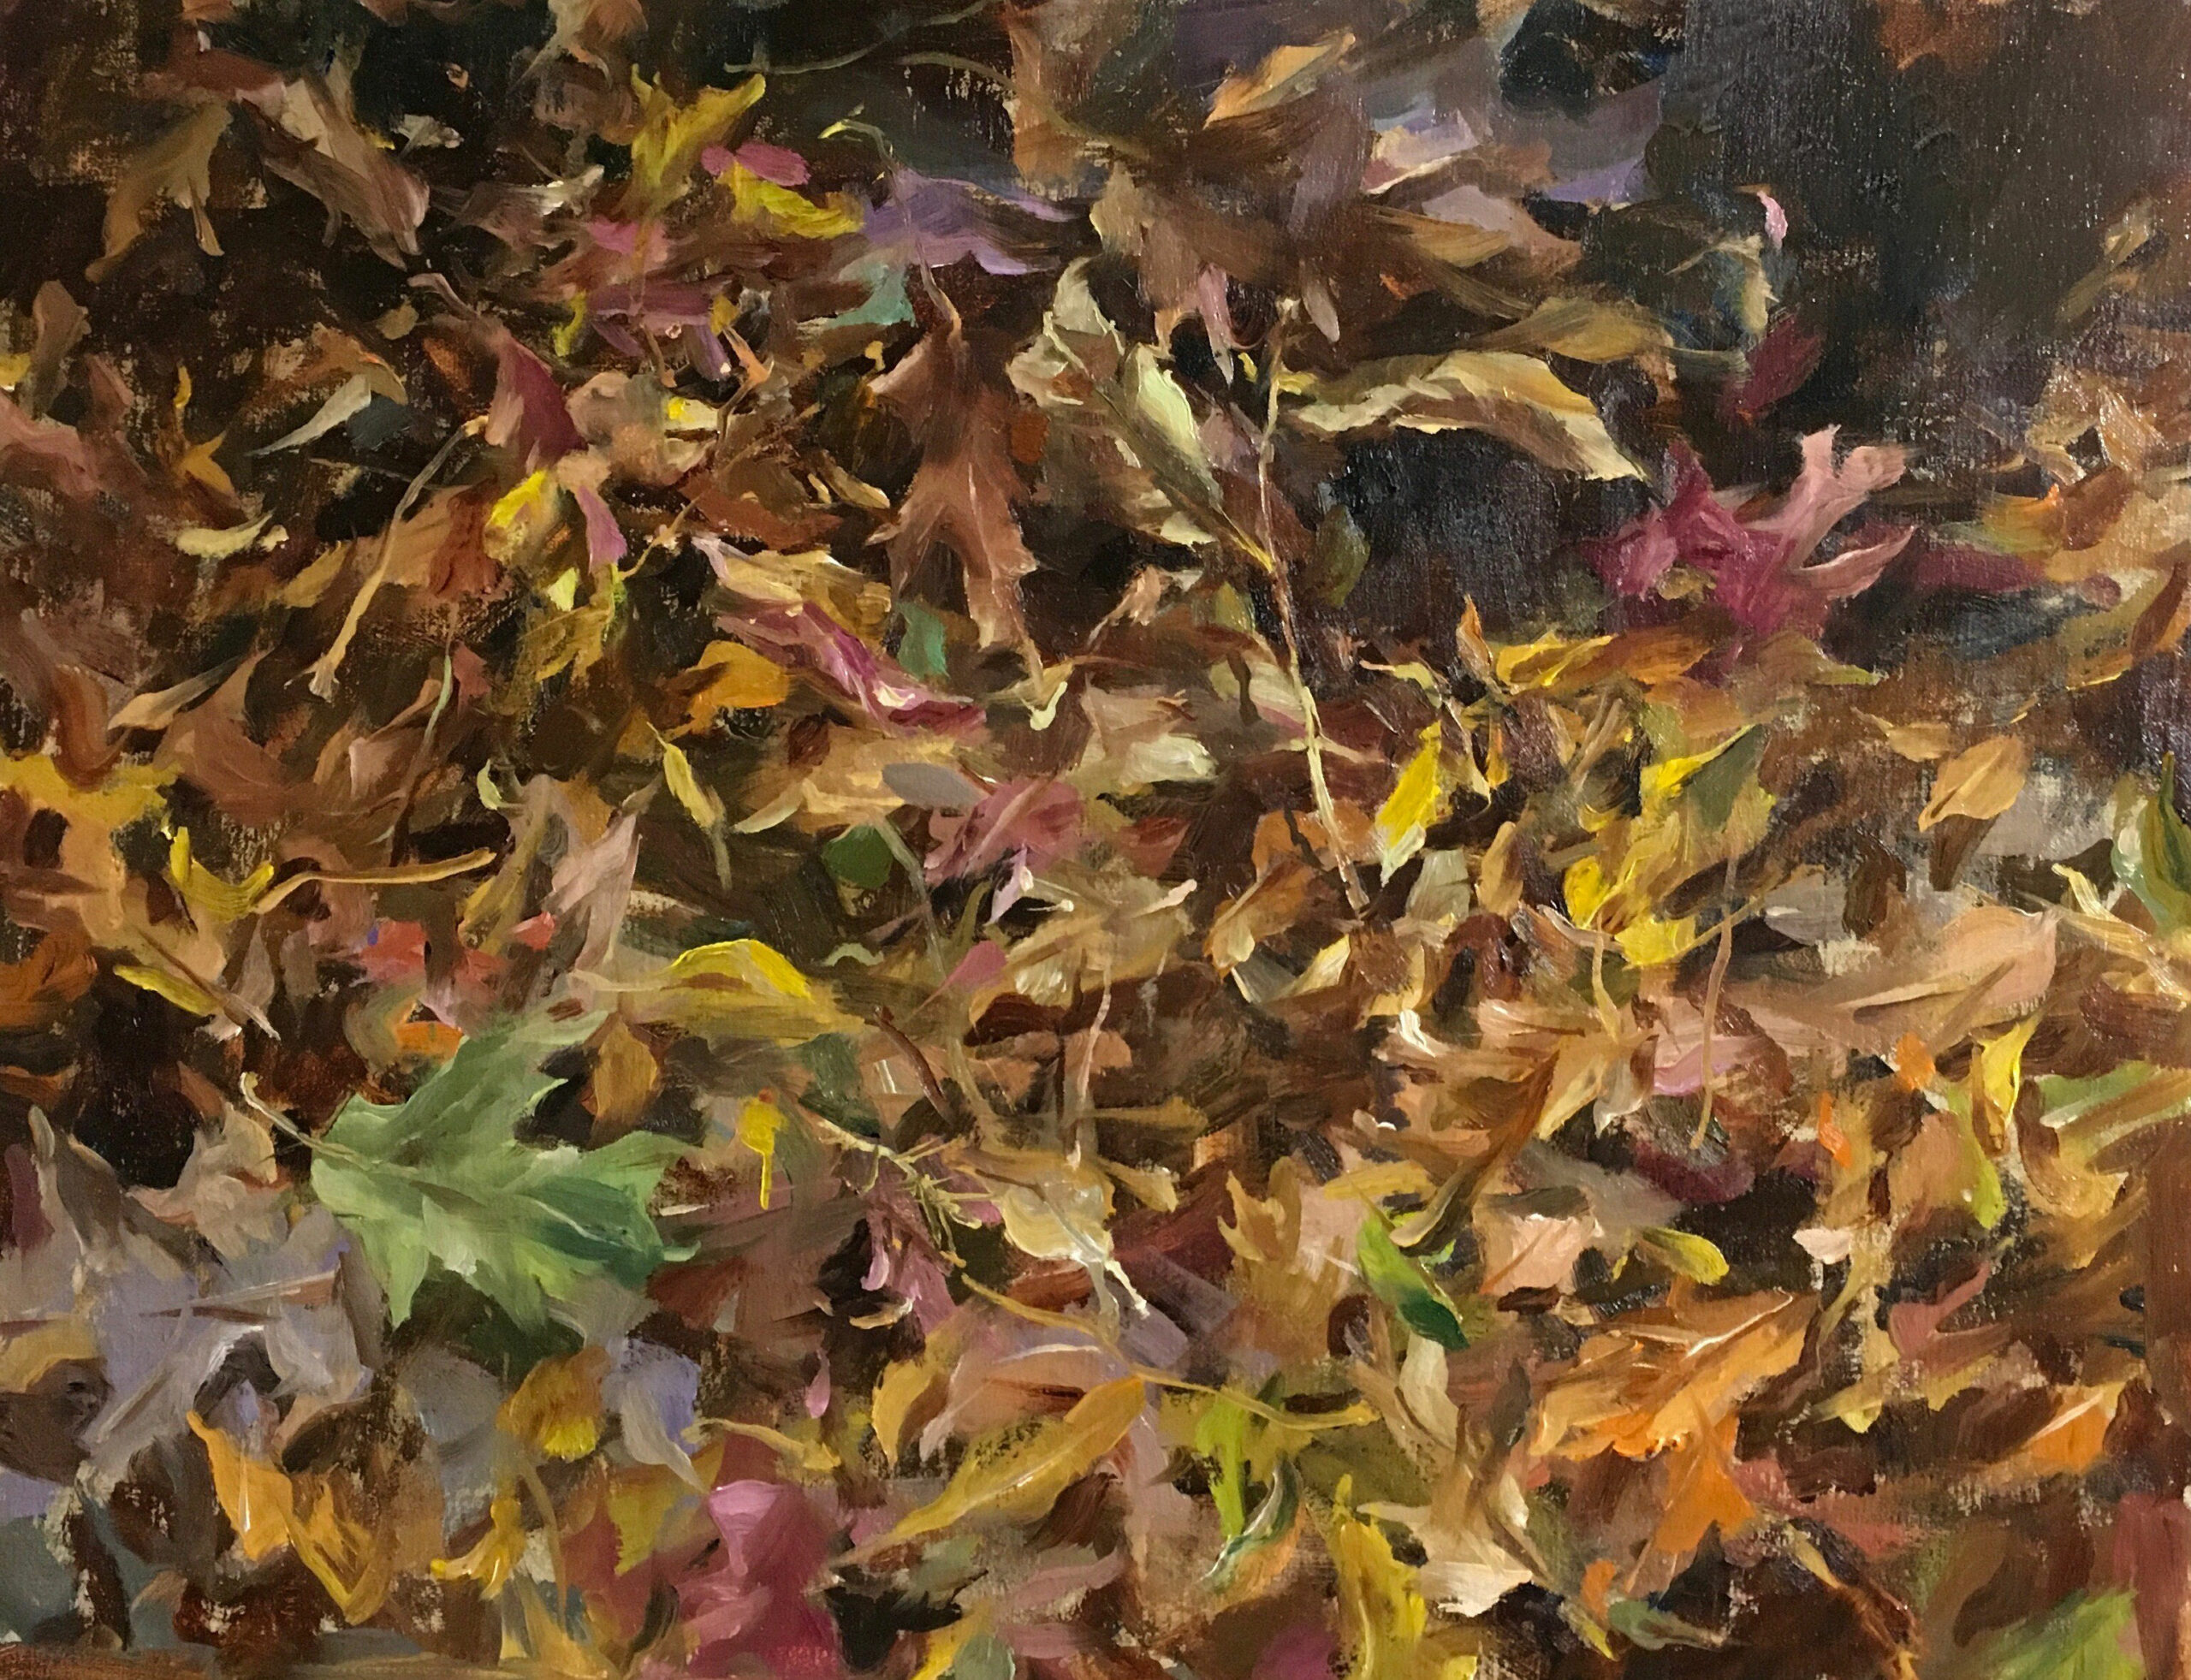 Ma,-Kyle,-Late-Autumn-Forest,-Oil,-14-x-18,-$2,400